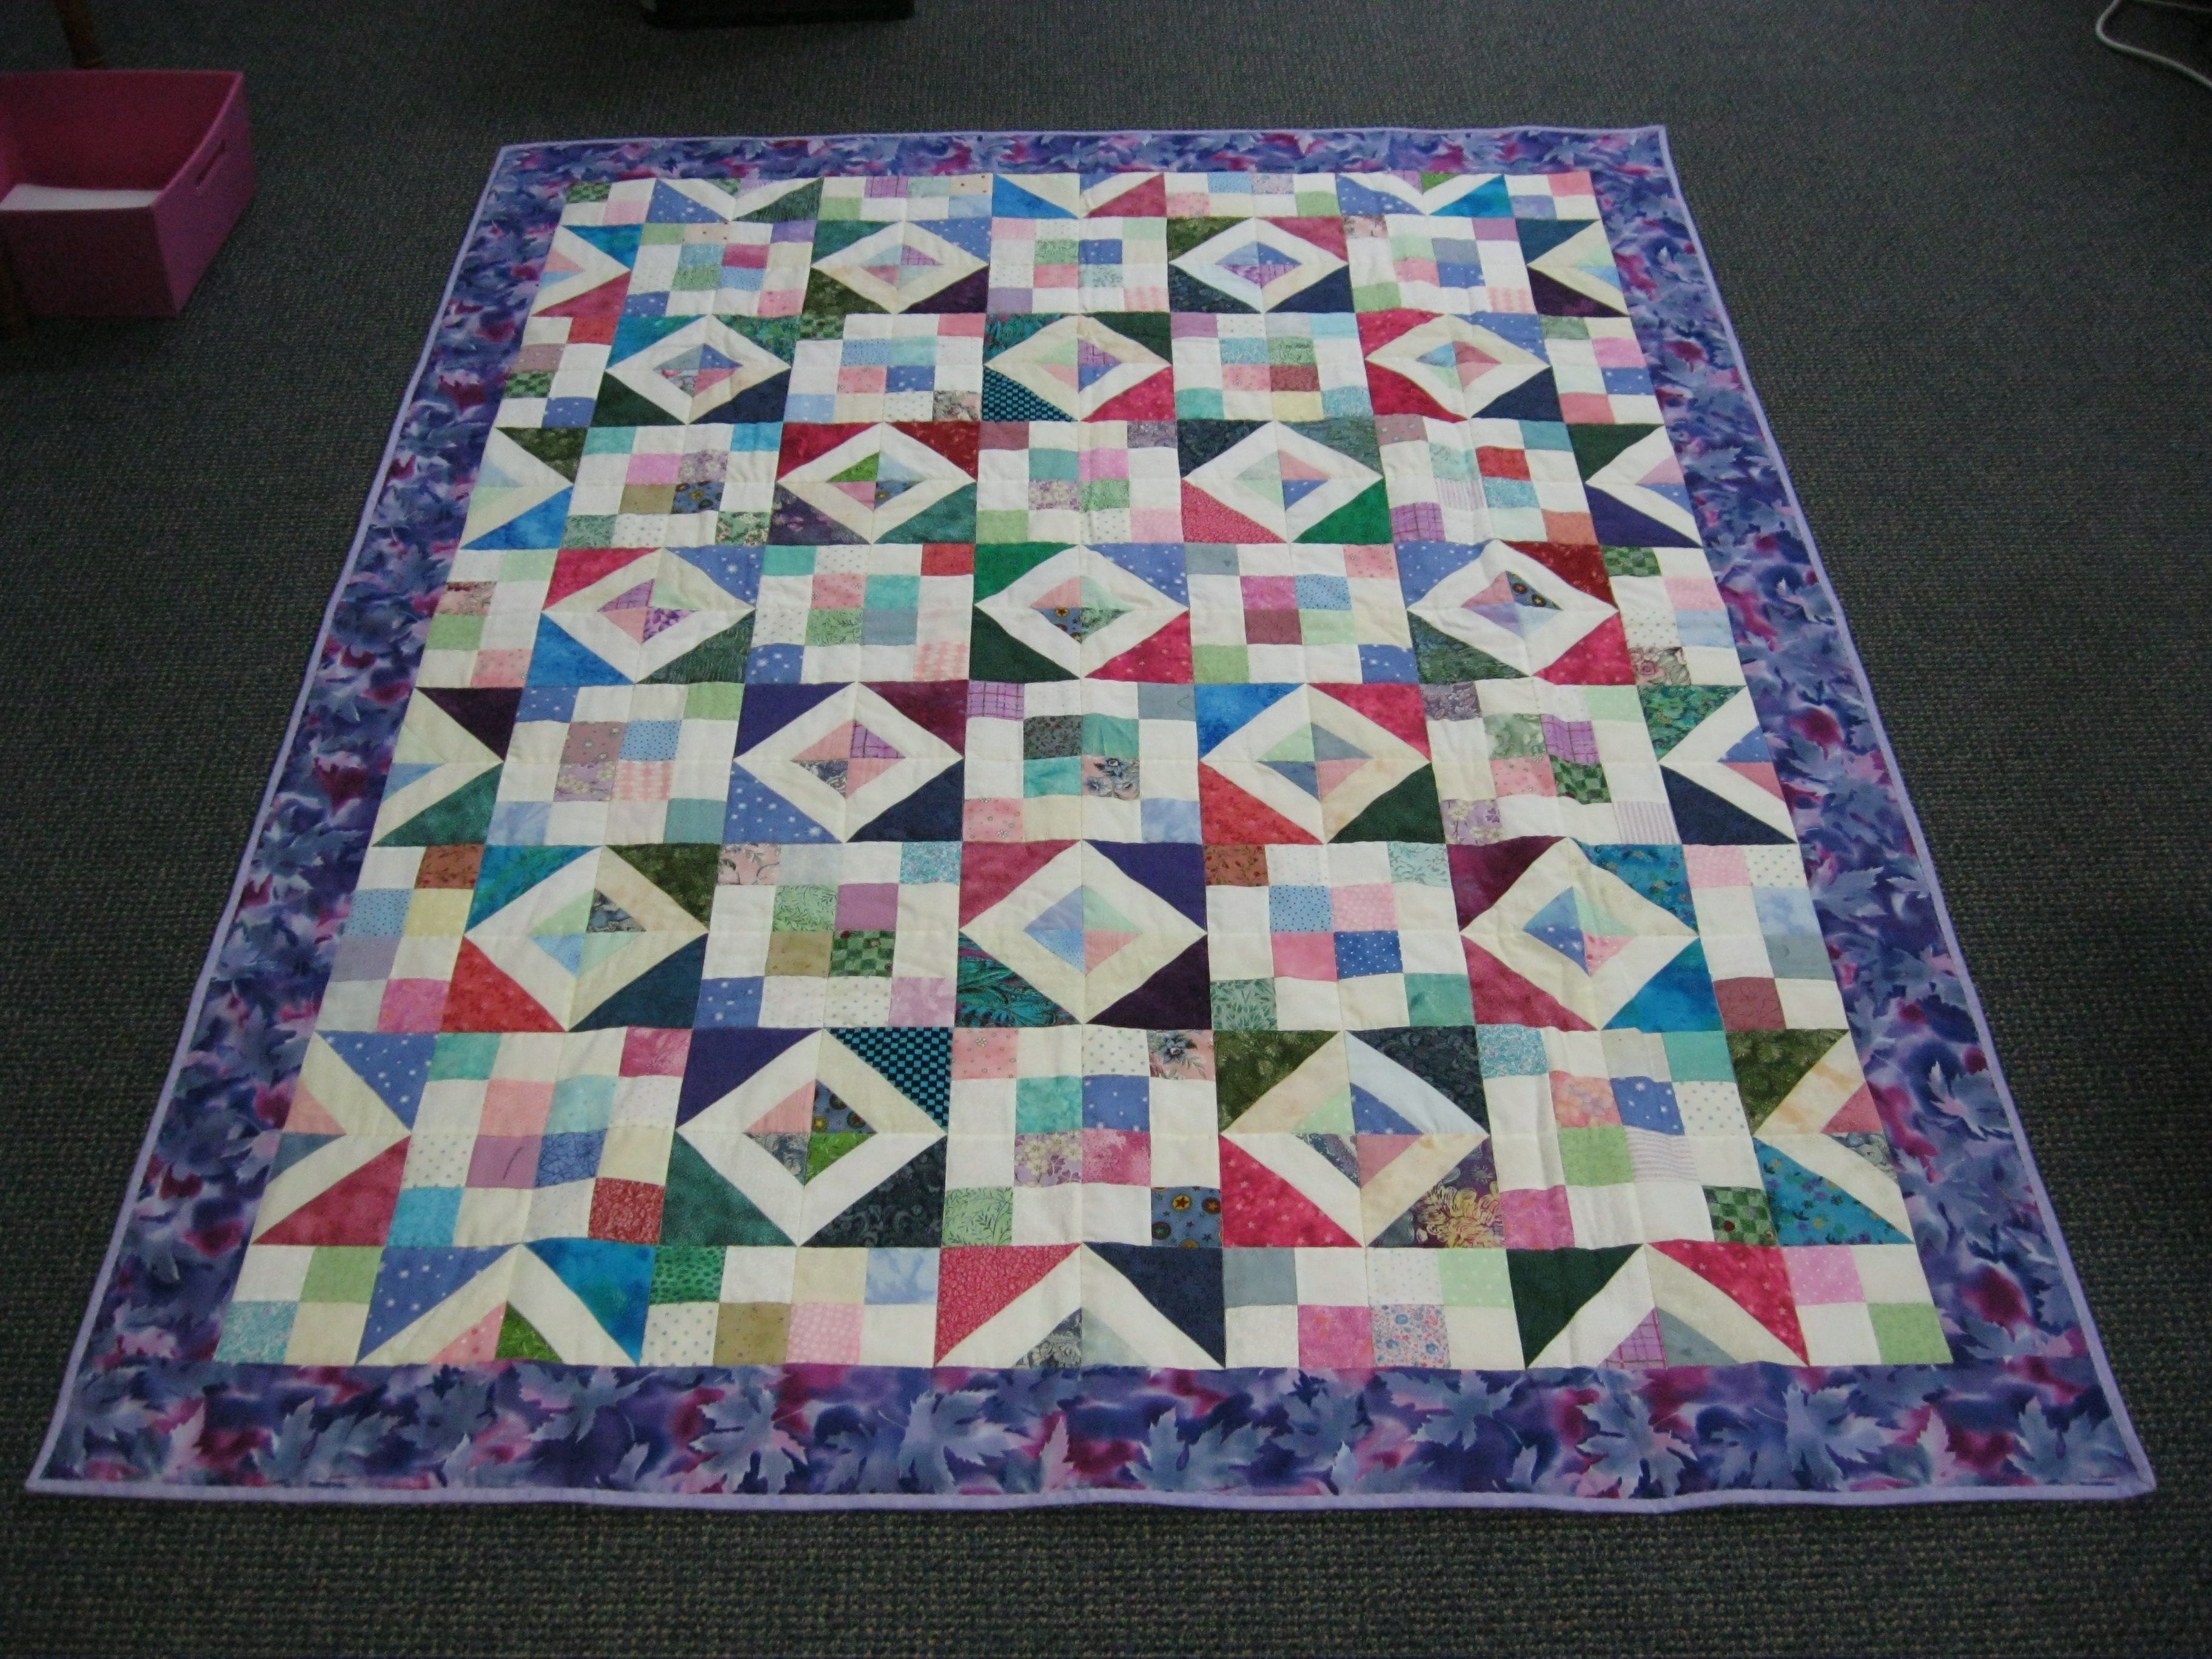 Betty Hofstsetter of Millersburg, OH made and donated this quilt to Hopes & Dreams. www.hopesanddreams.quiltersdreambatting.com